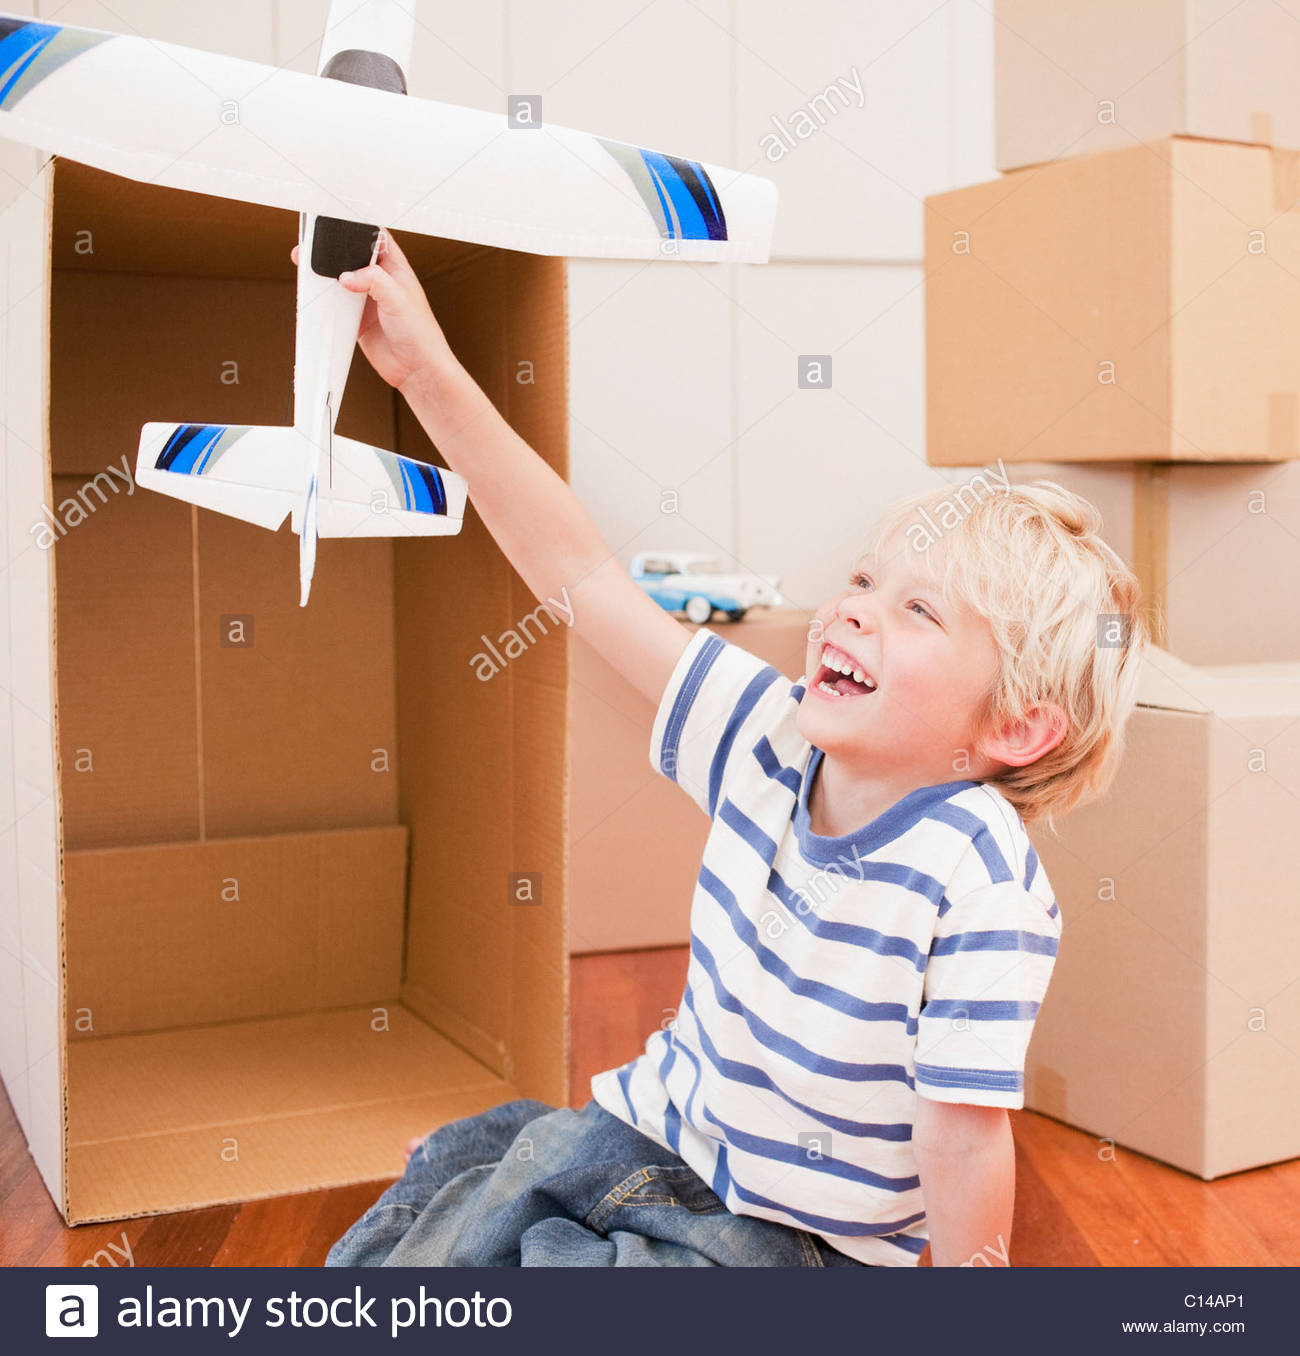 Grinning boy playing with model airplane in his new house - Stock Image